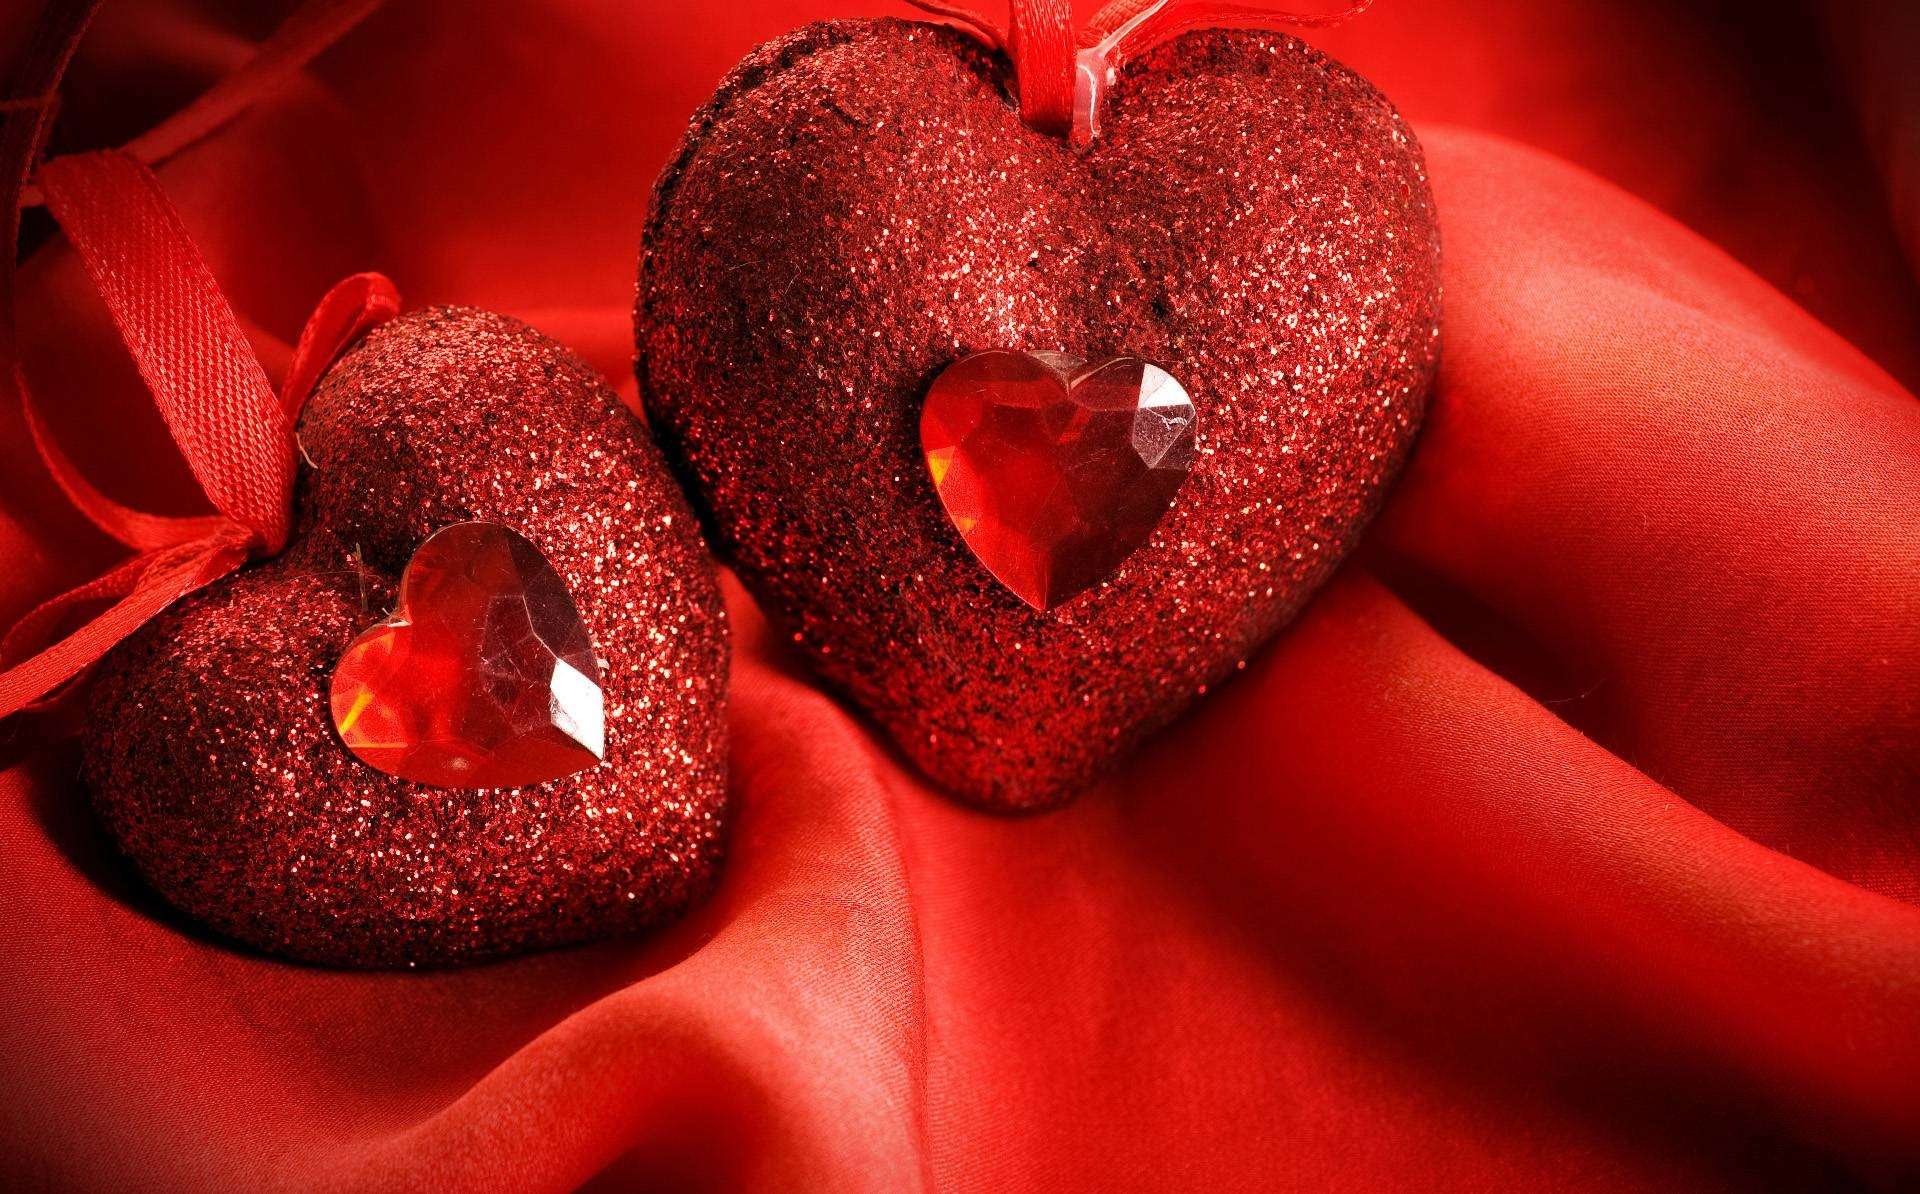 Heart Background free download   Wallpapers, Backgrounds, Images .